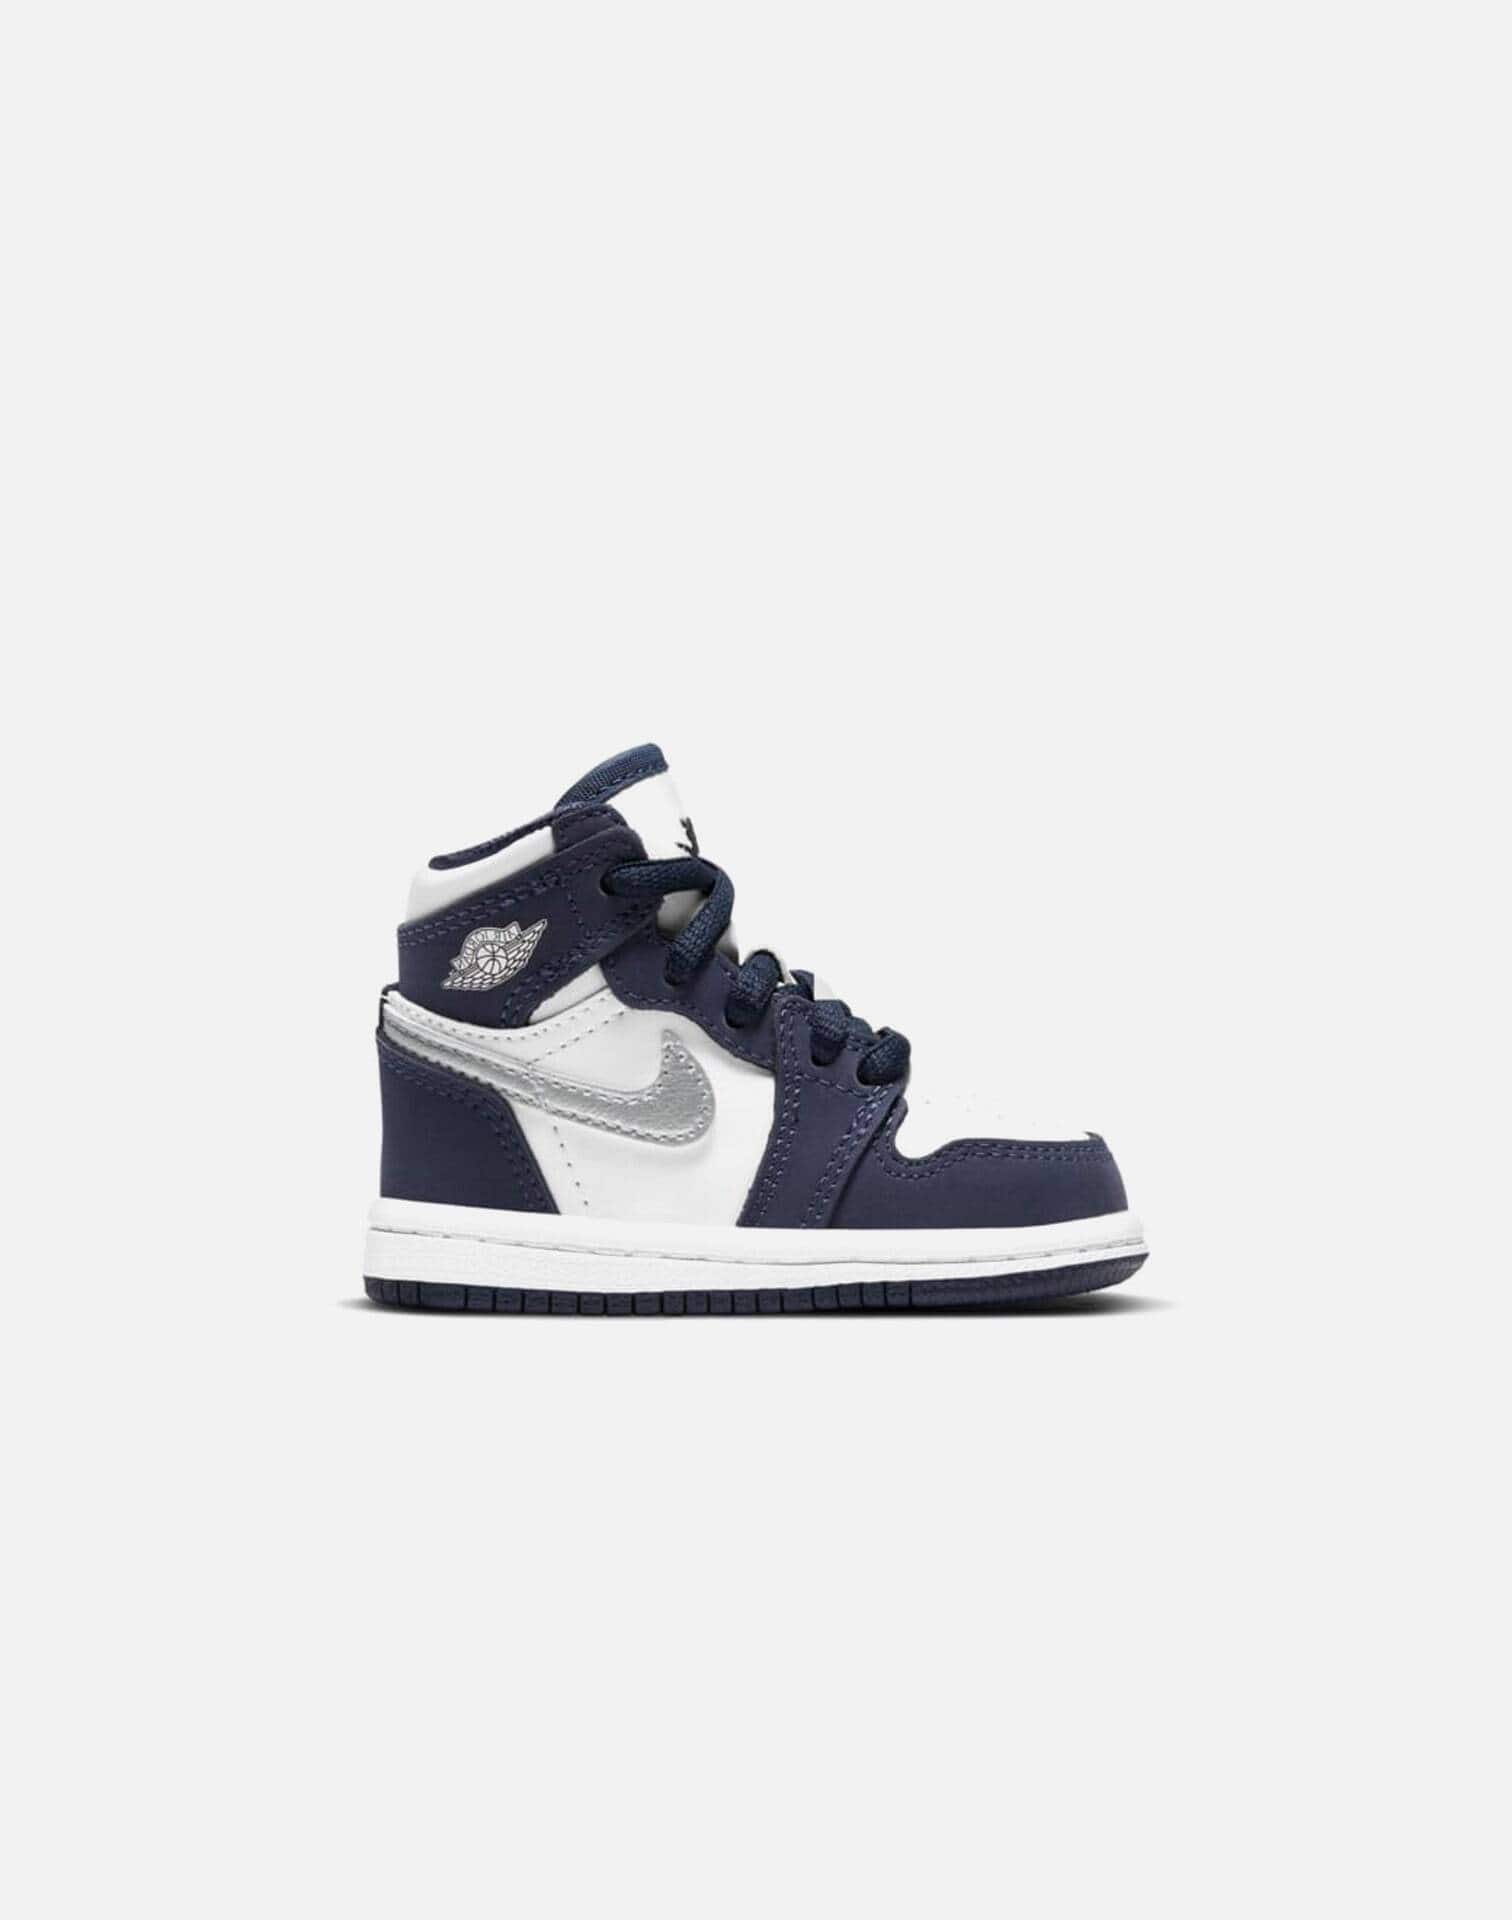 Jordan AIR JORDAN RETRO 1 HIGH OG CO.JP 'JAPAN' INFANT